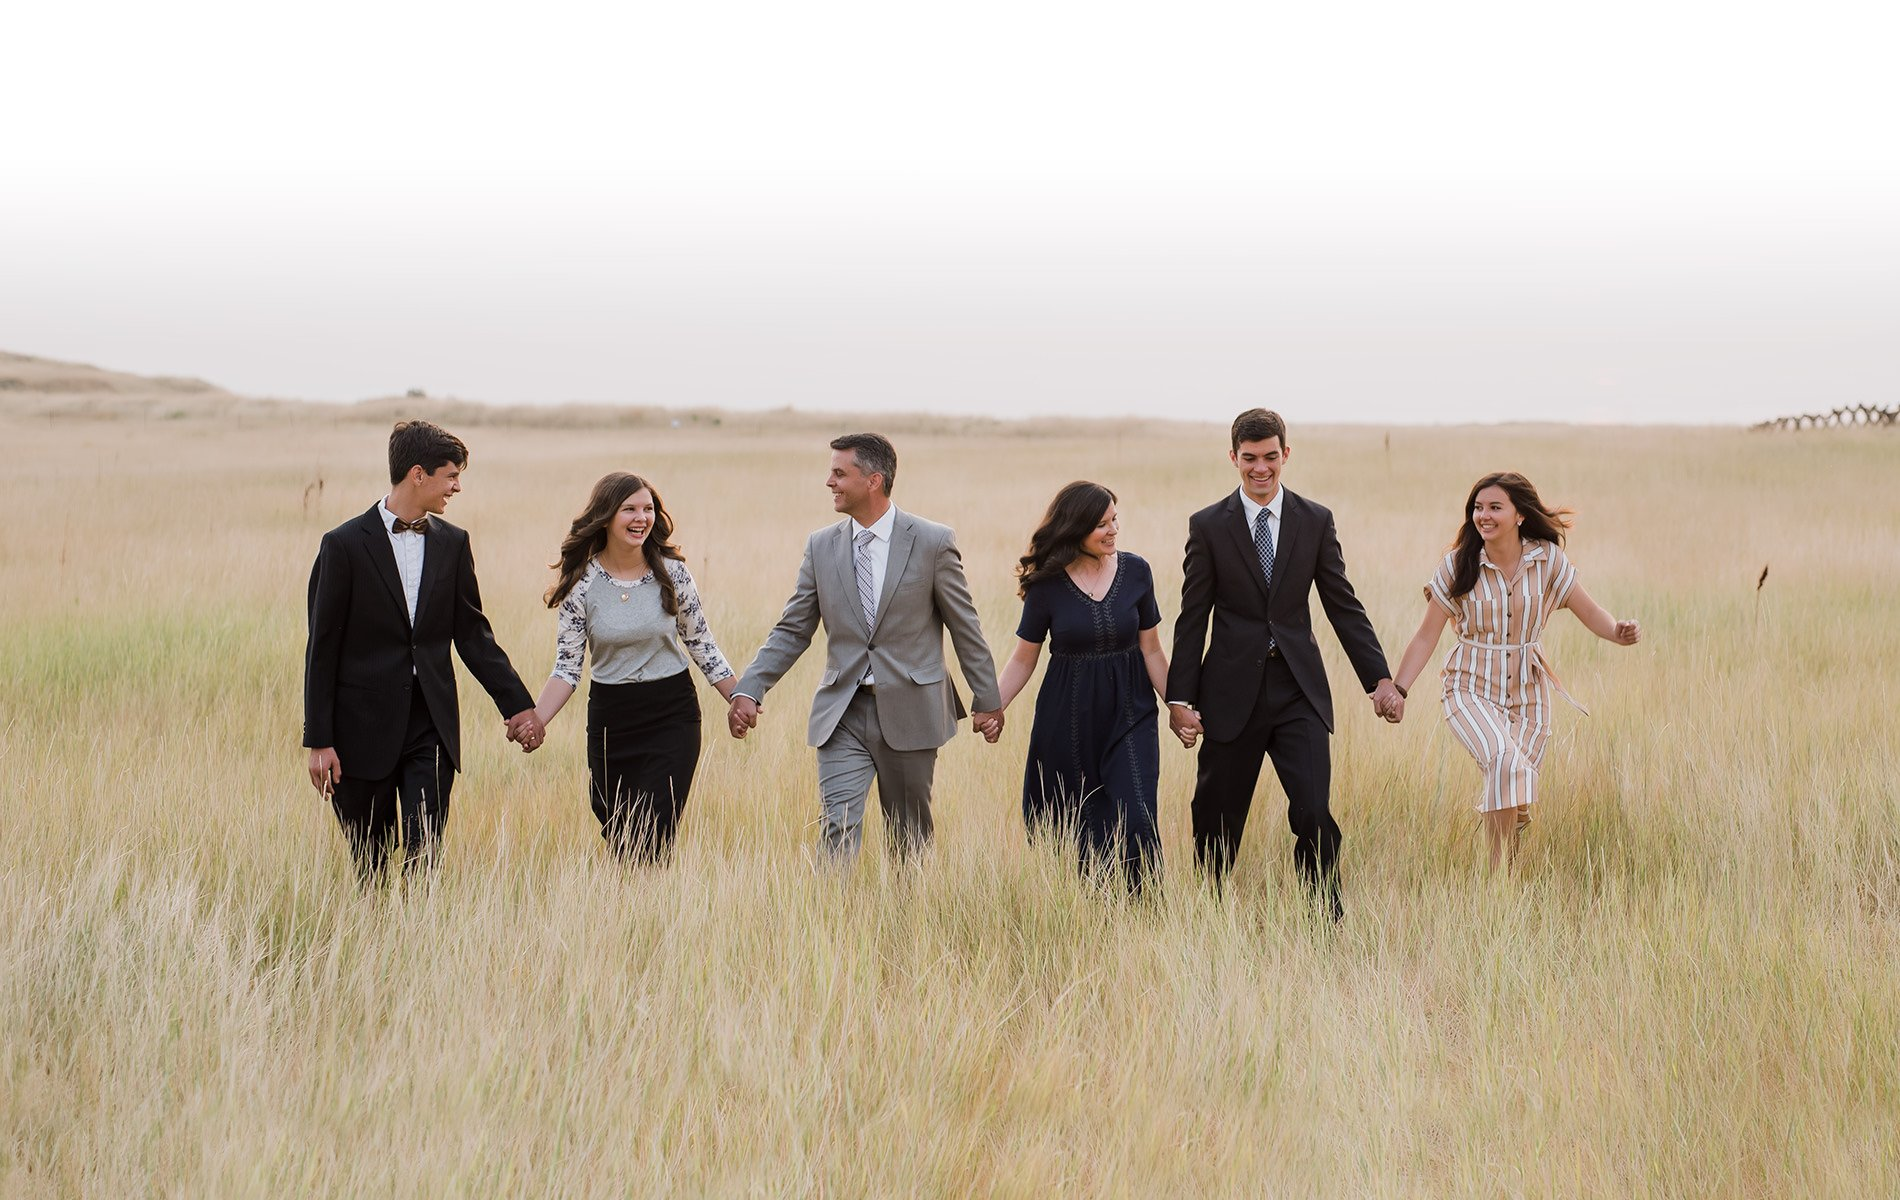 Family walking together in tall weeds for utah wedding and portrait photography.